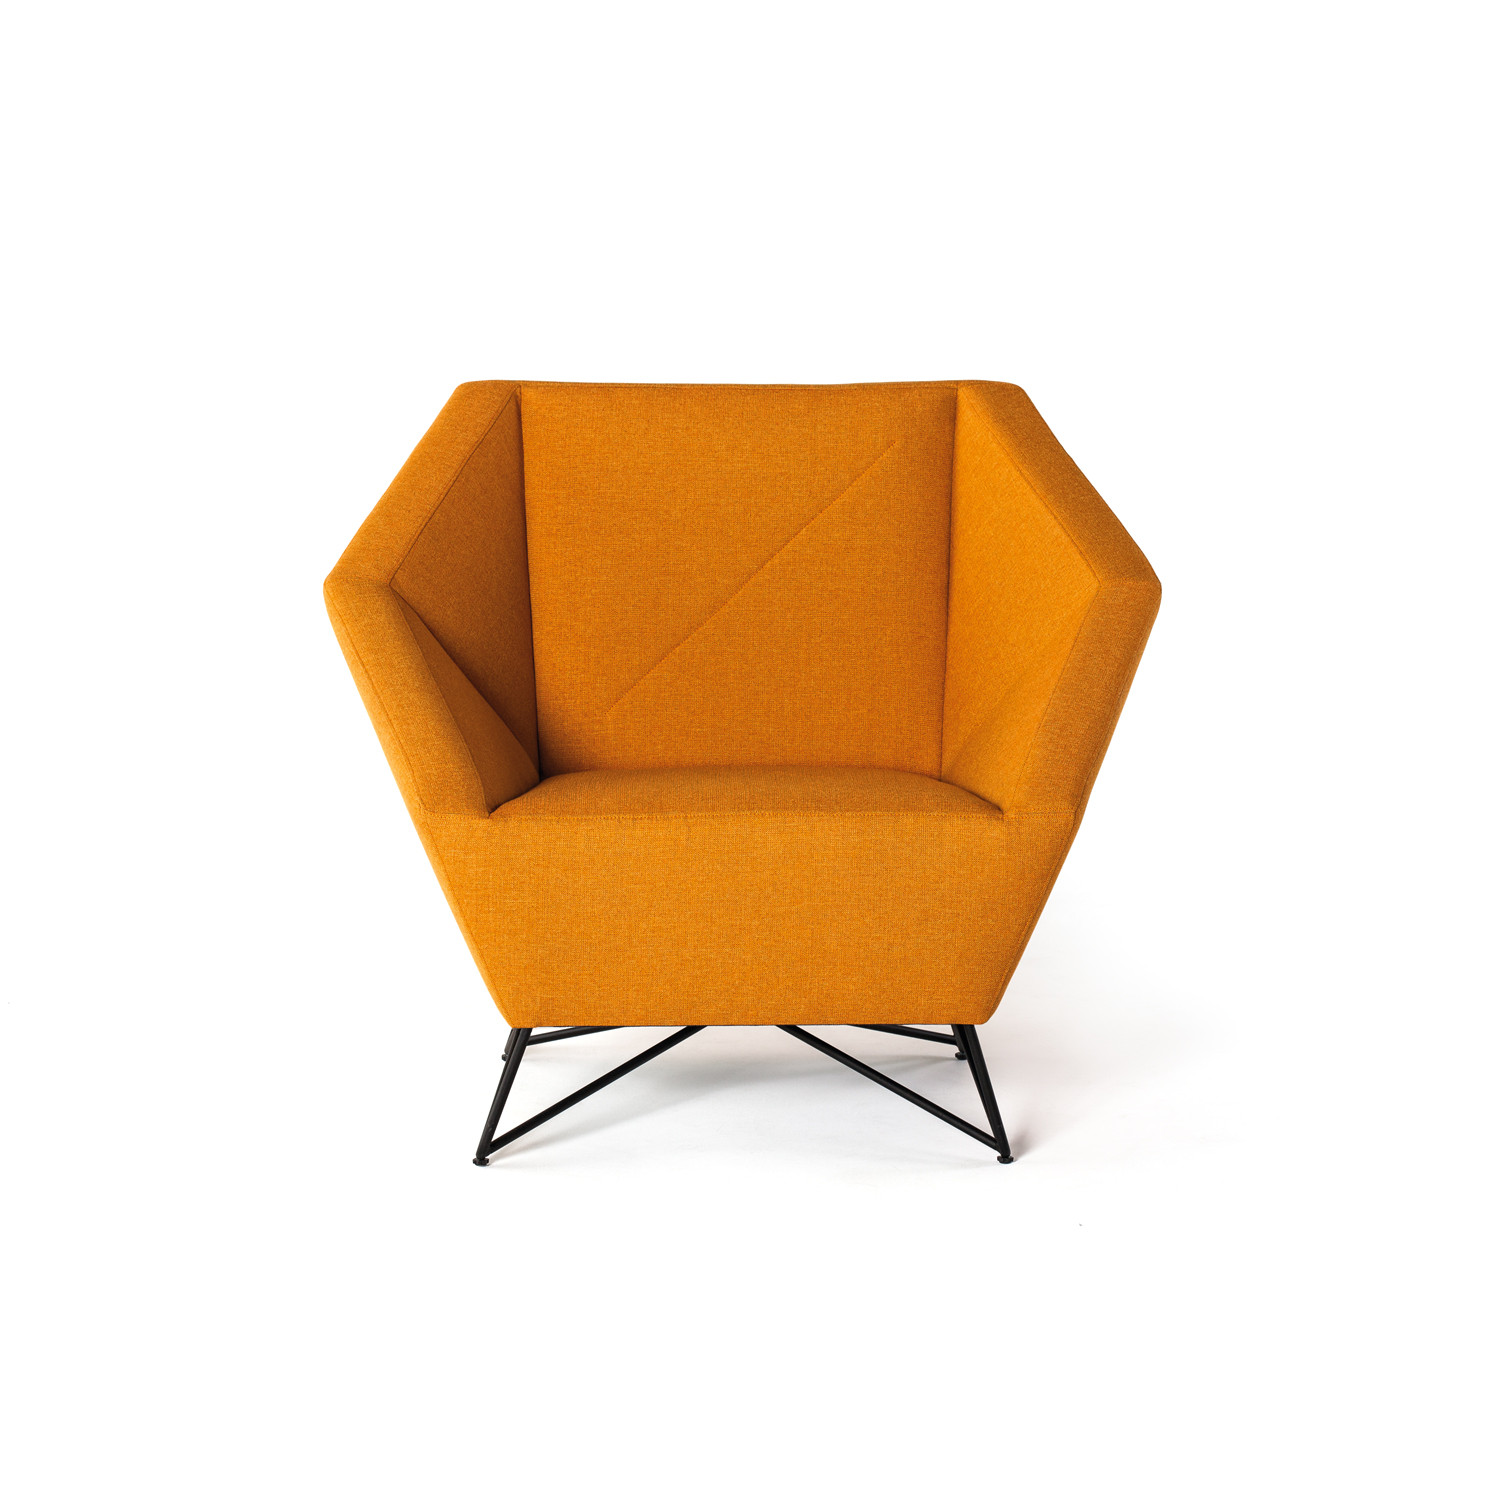 3 Angle Armchair // Orange